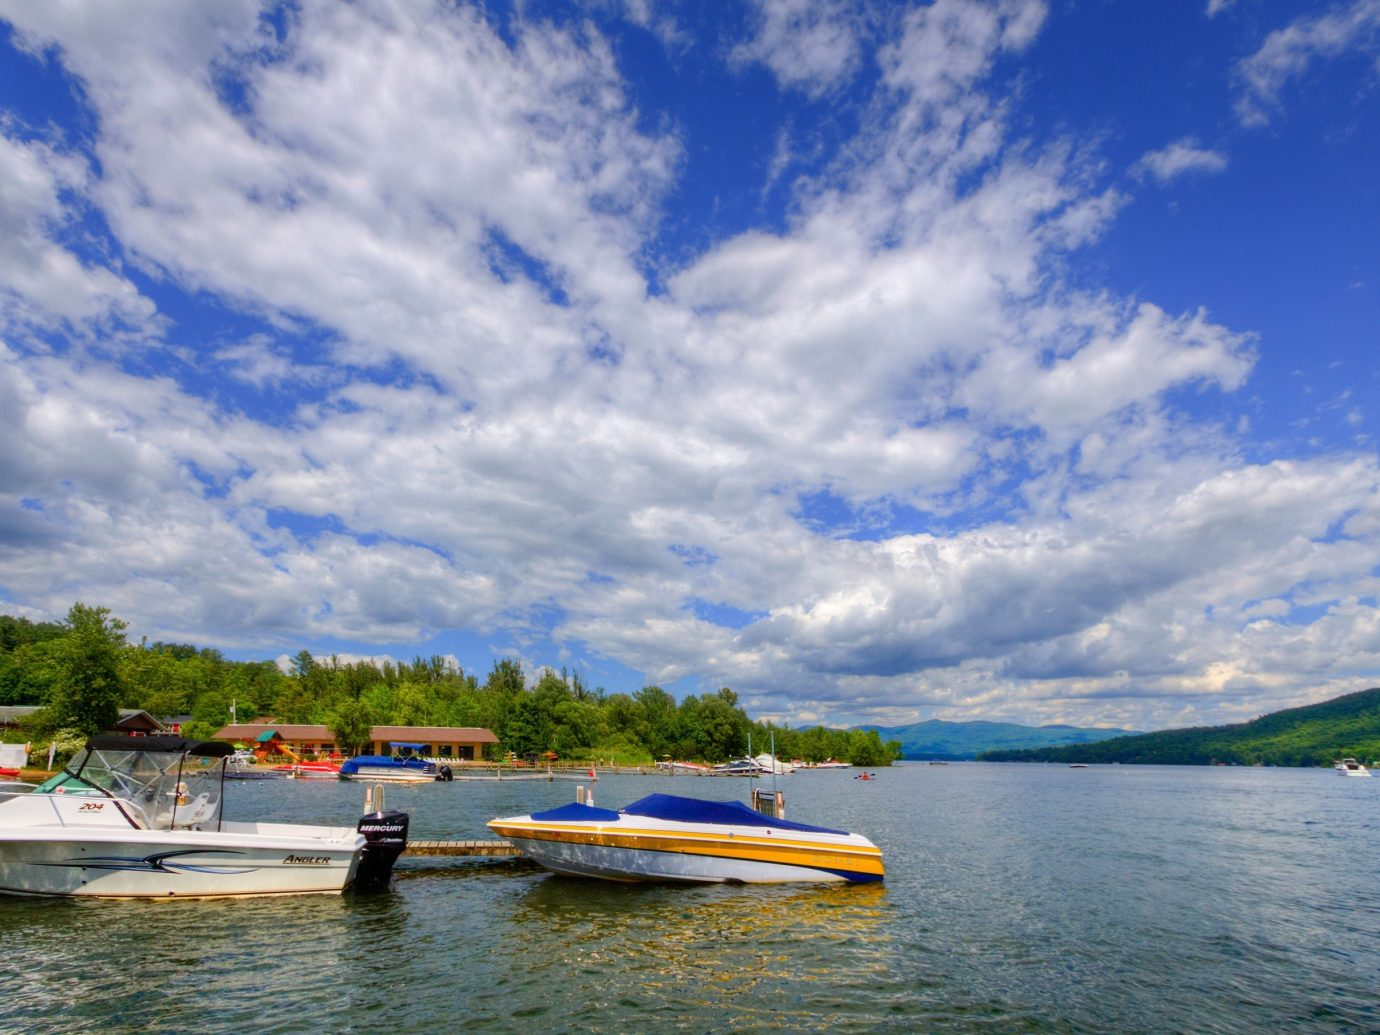 Trip Ideas sky water outdoor Boat Sea boating vehicle cloud shore Lake bay loch watercraft day